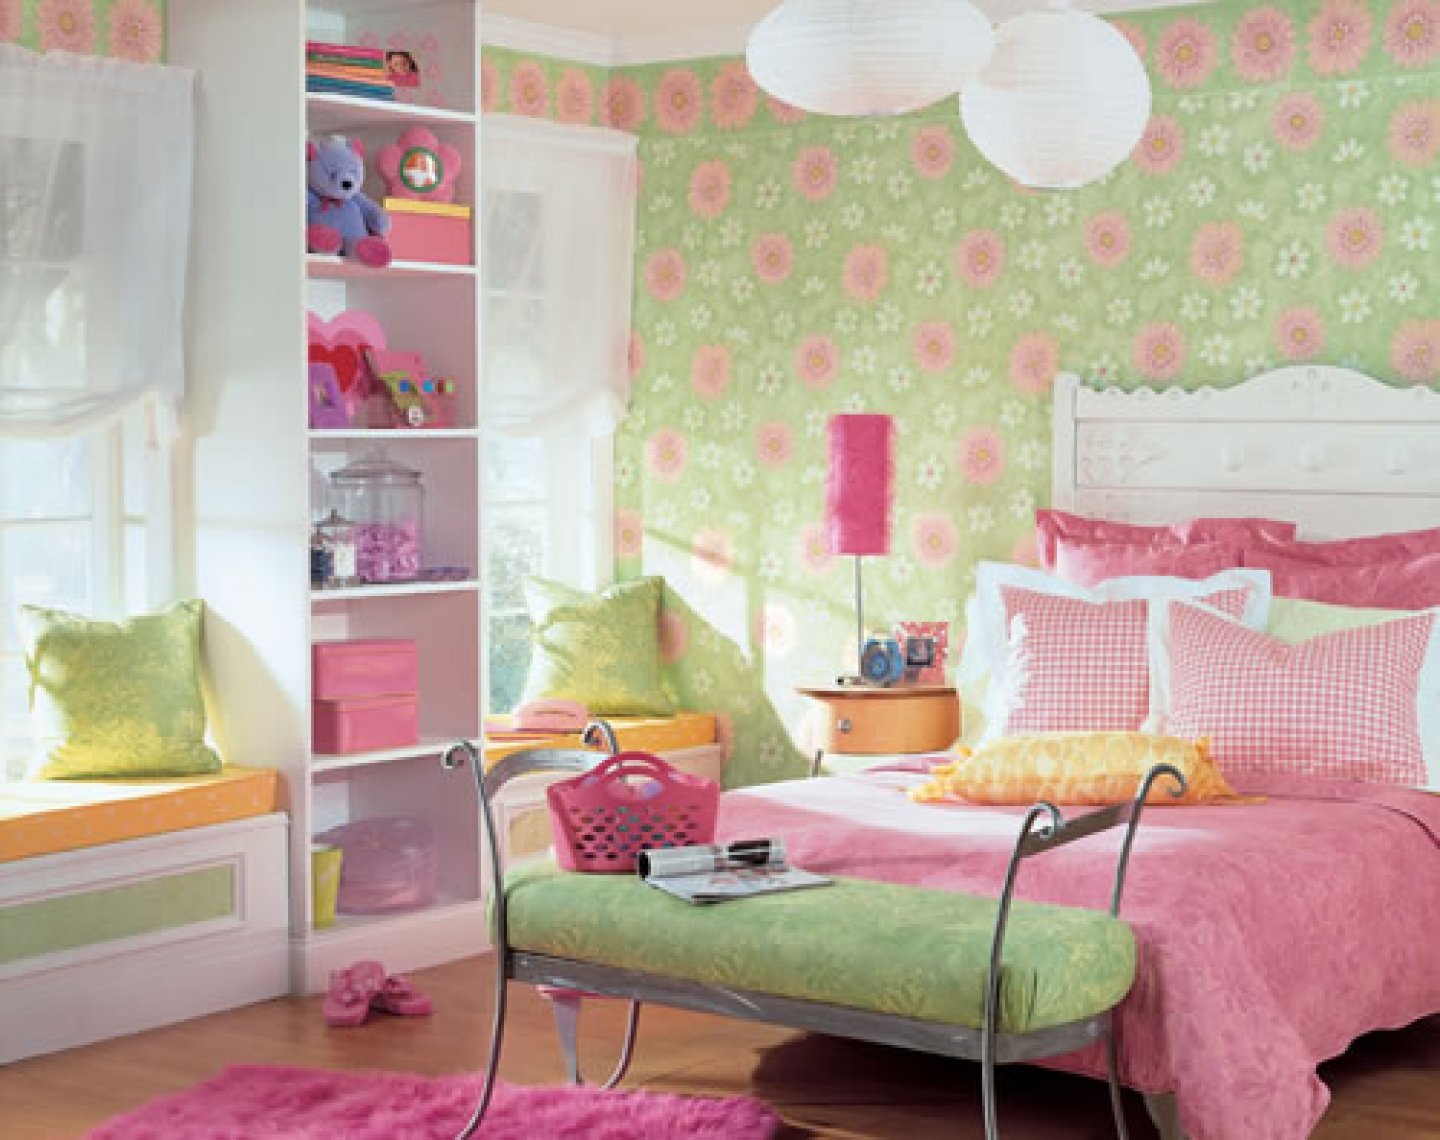 Green Polka Dots Wallpaper Bedroom Design (Image 6 of 10)